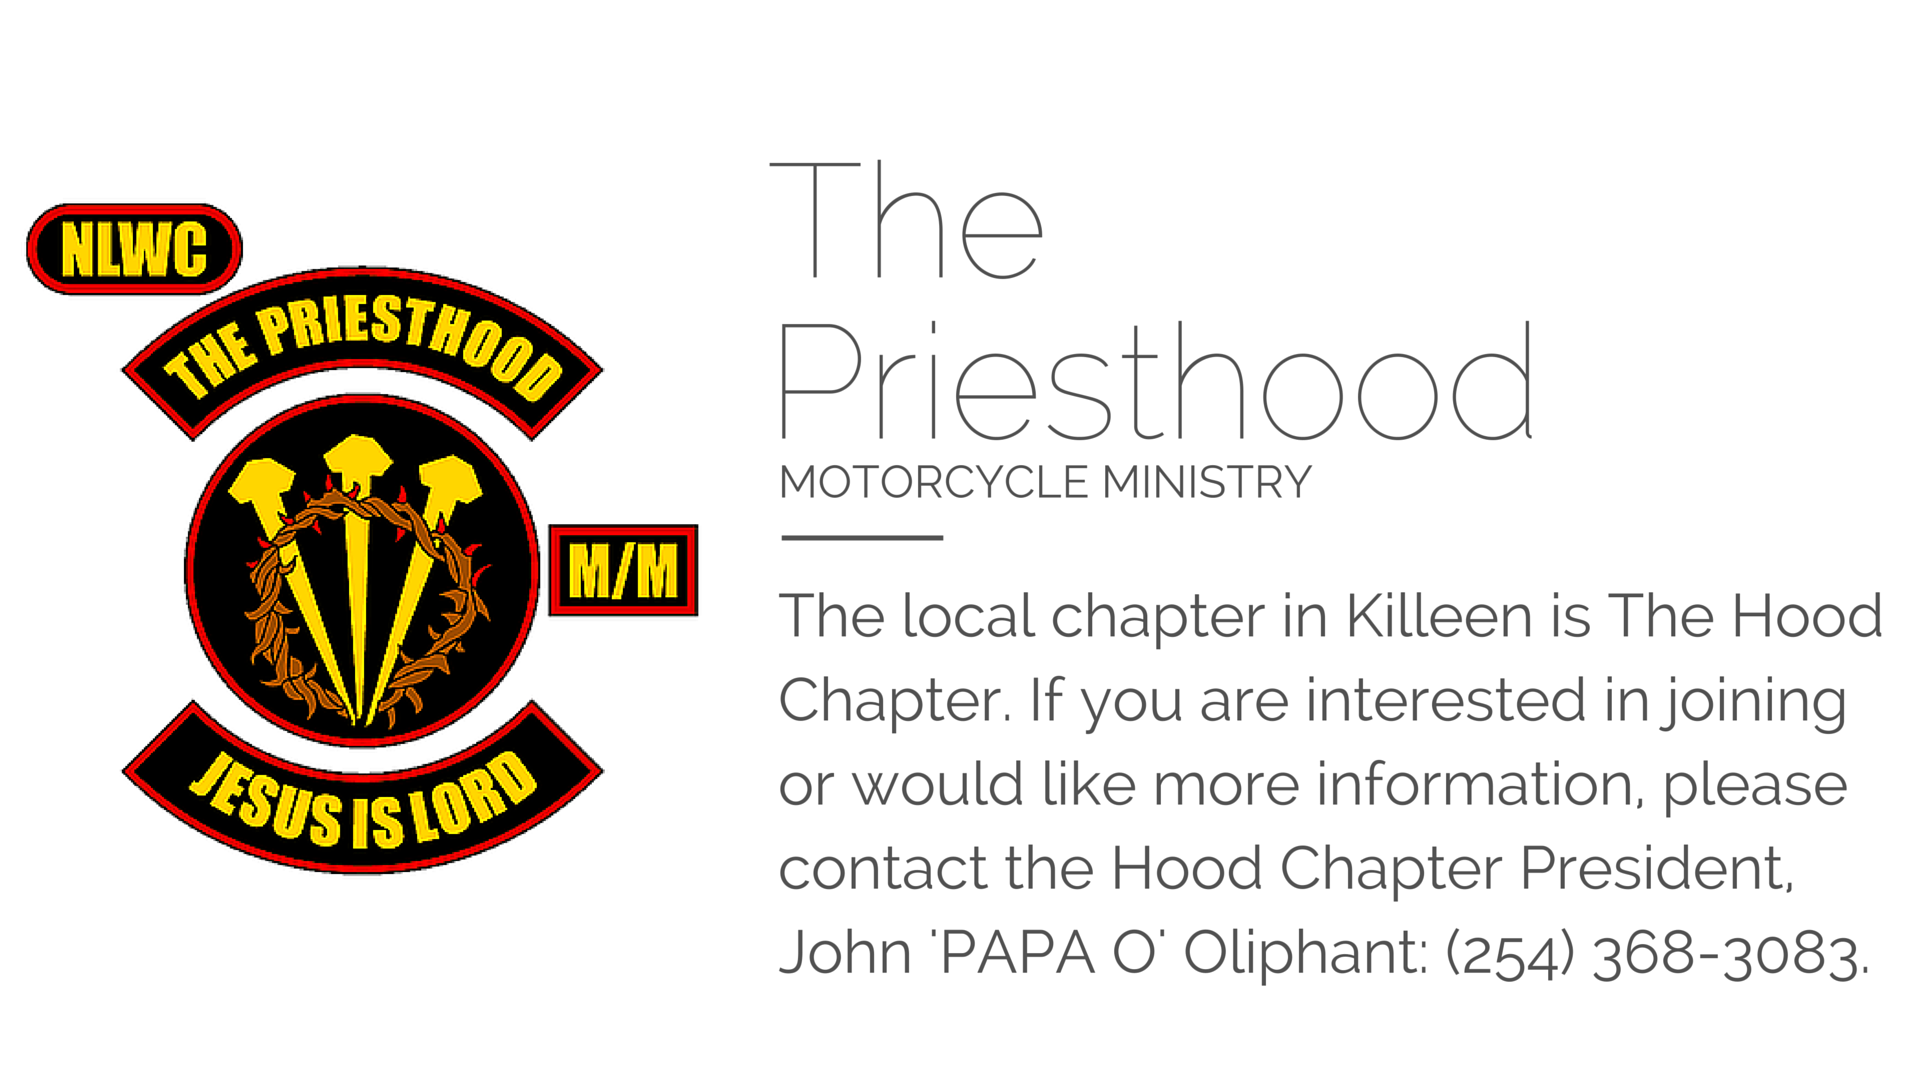 The Priesthood Motorcycle Ministry